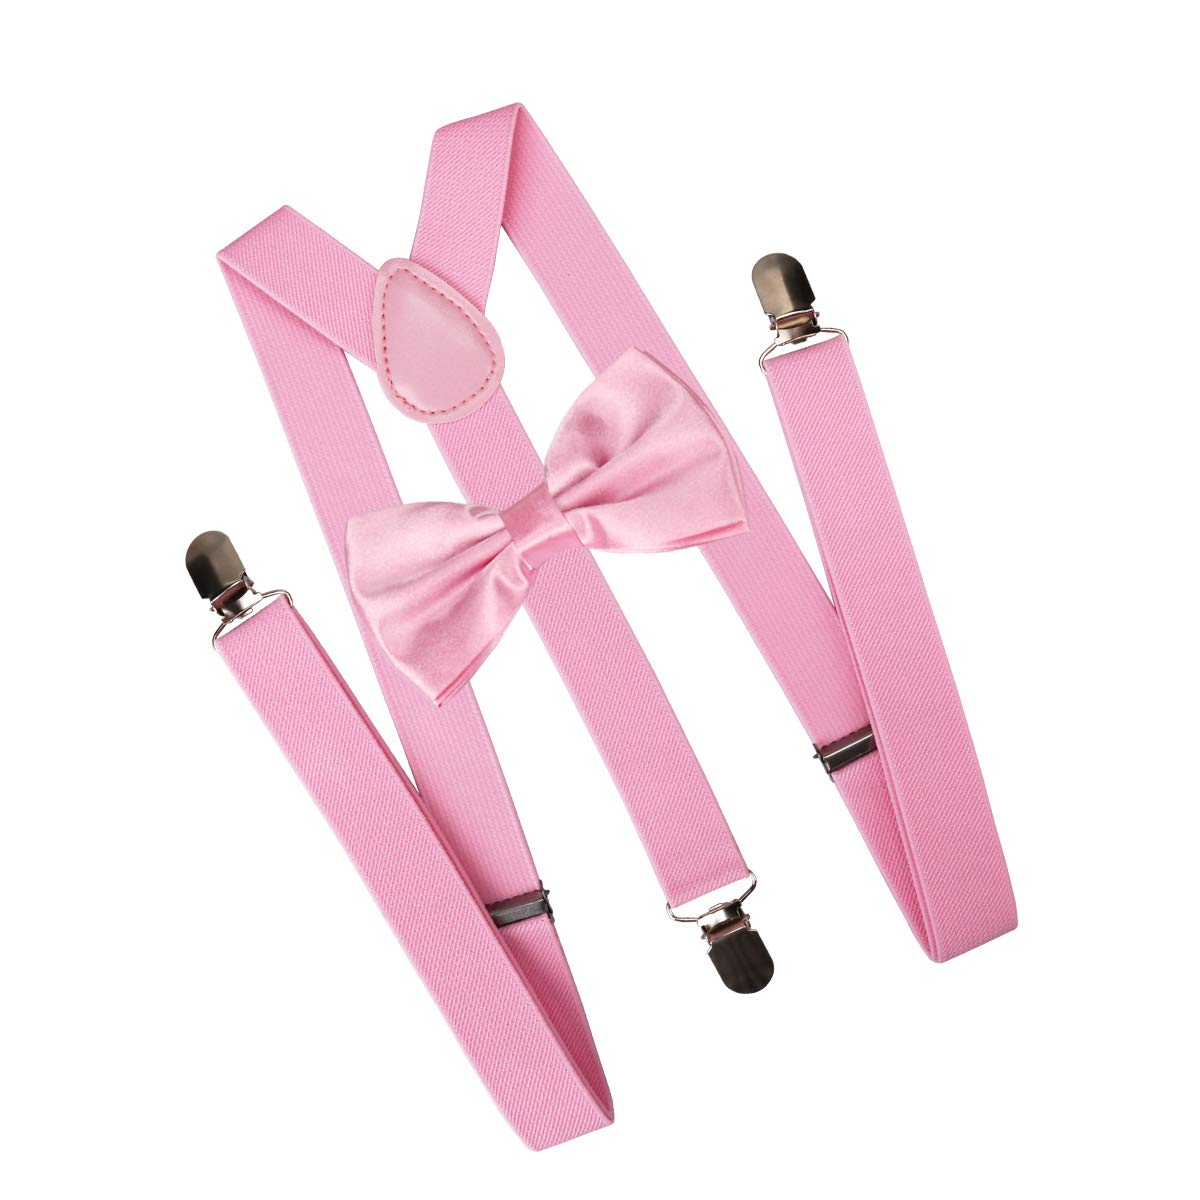 Pink Exacoo Suspender Y Shape with Strong Clips Adjustable Braces With Bow Ties Gift Idea for Mens